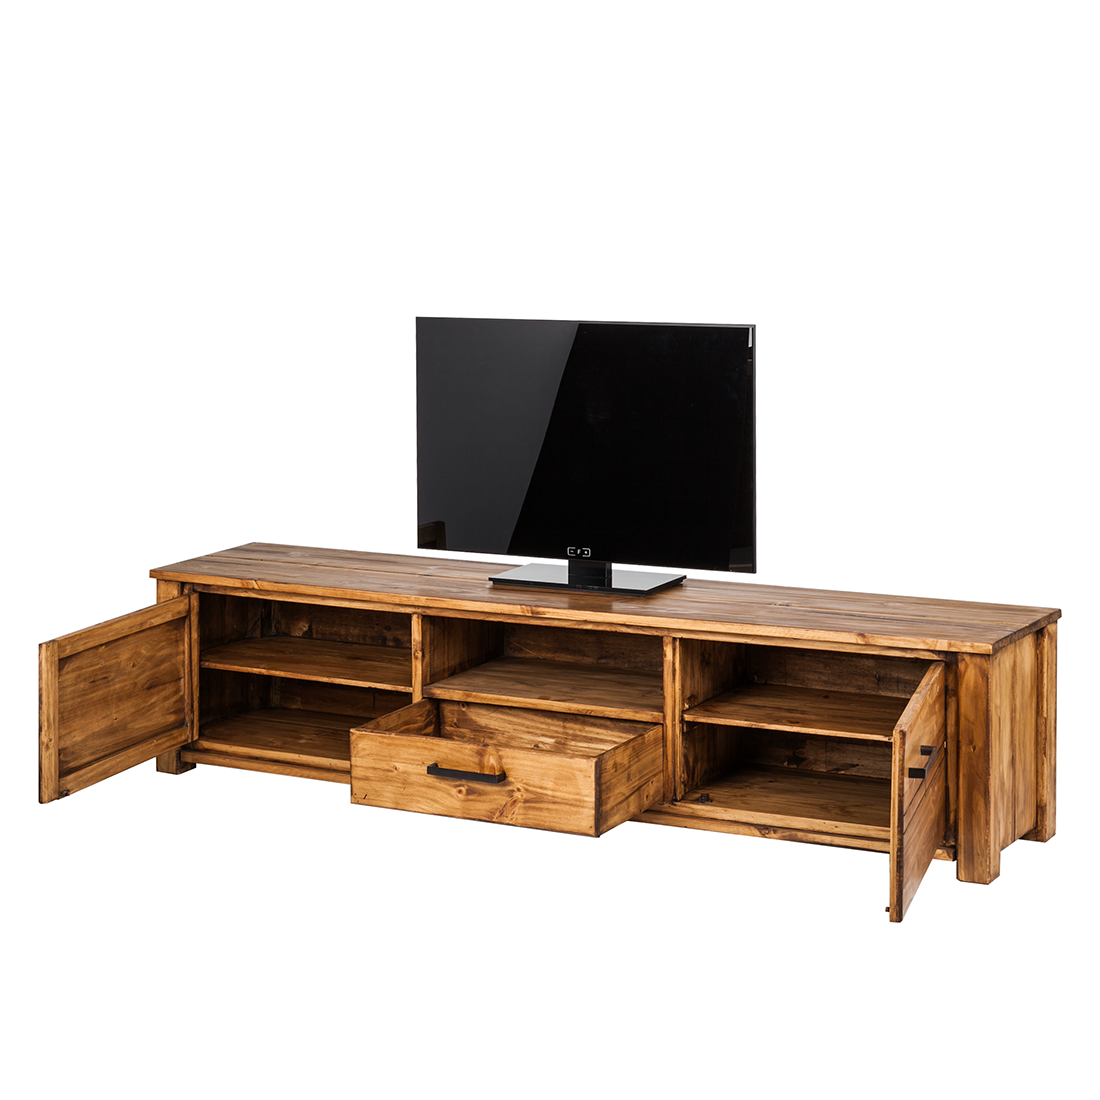 lowboard pinie massivholz fernsehtisch sideboard tv rack regal schrank holz neu ebay. Black Bedroom Furniture Sets. Home Design Ideas